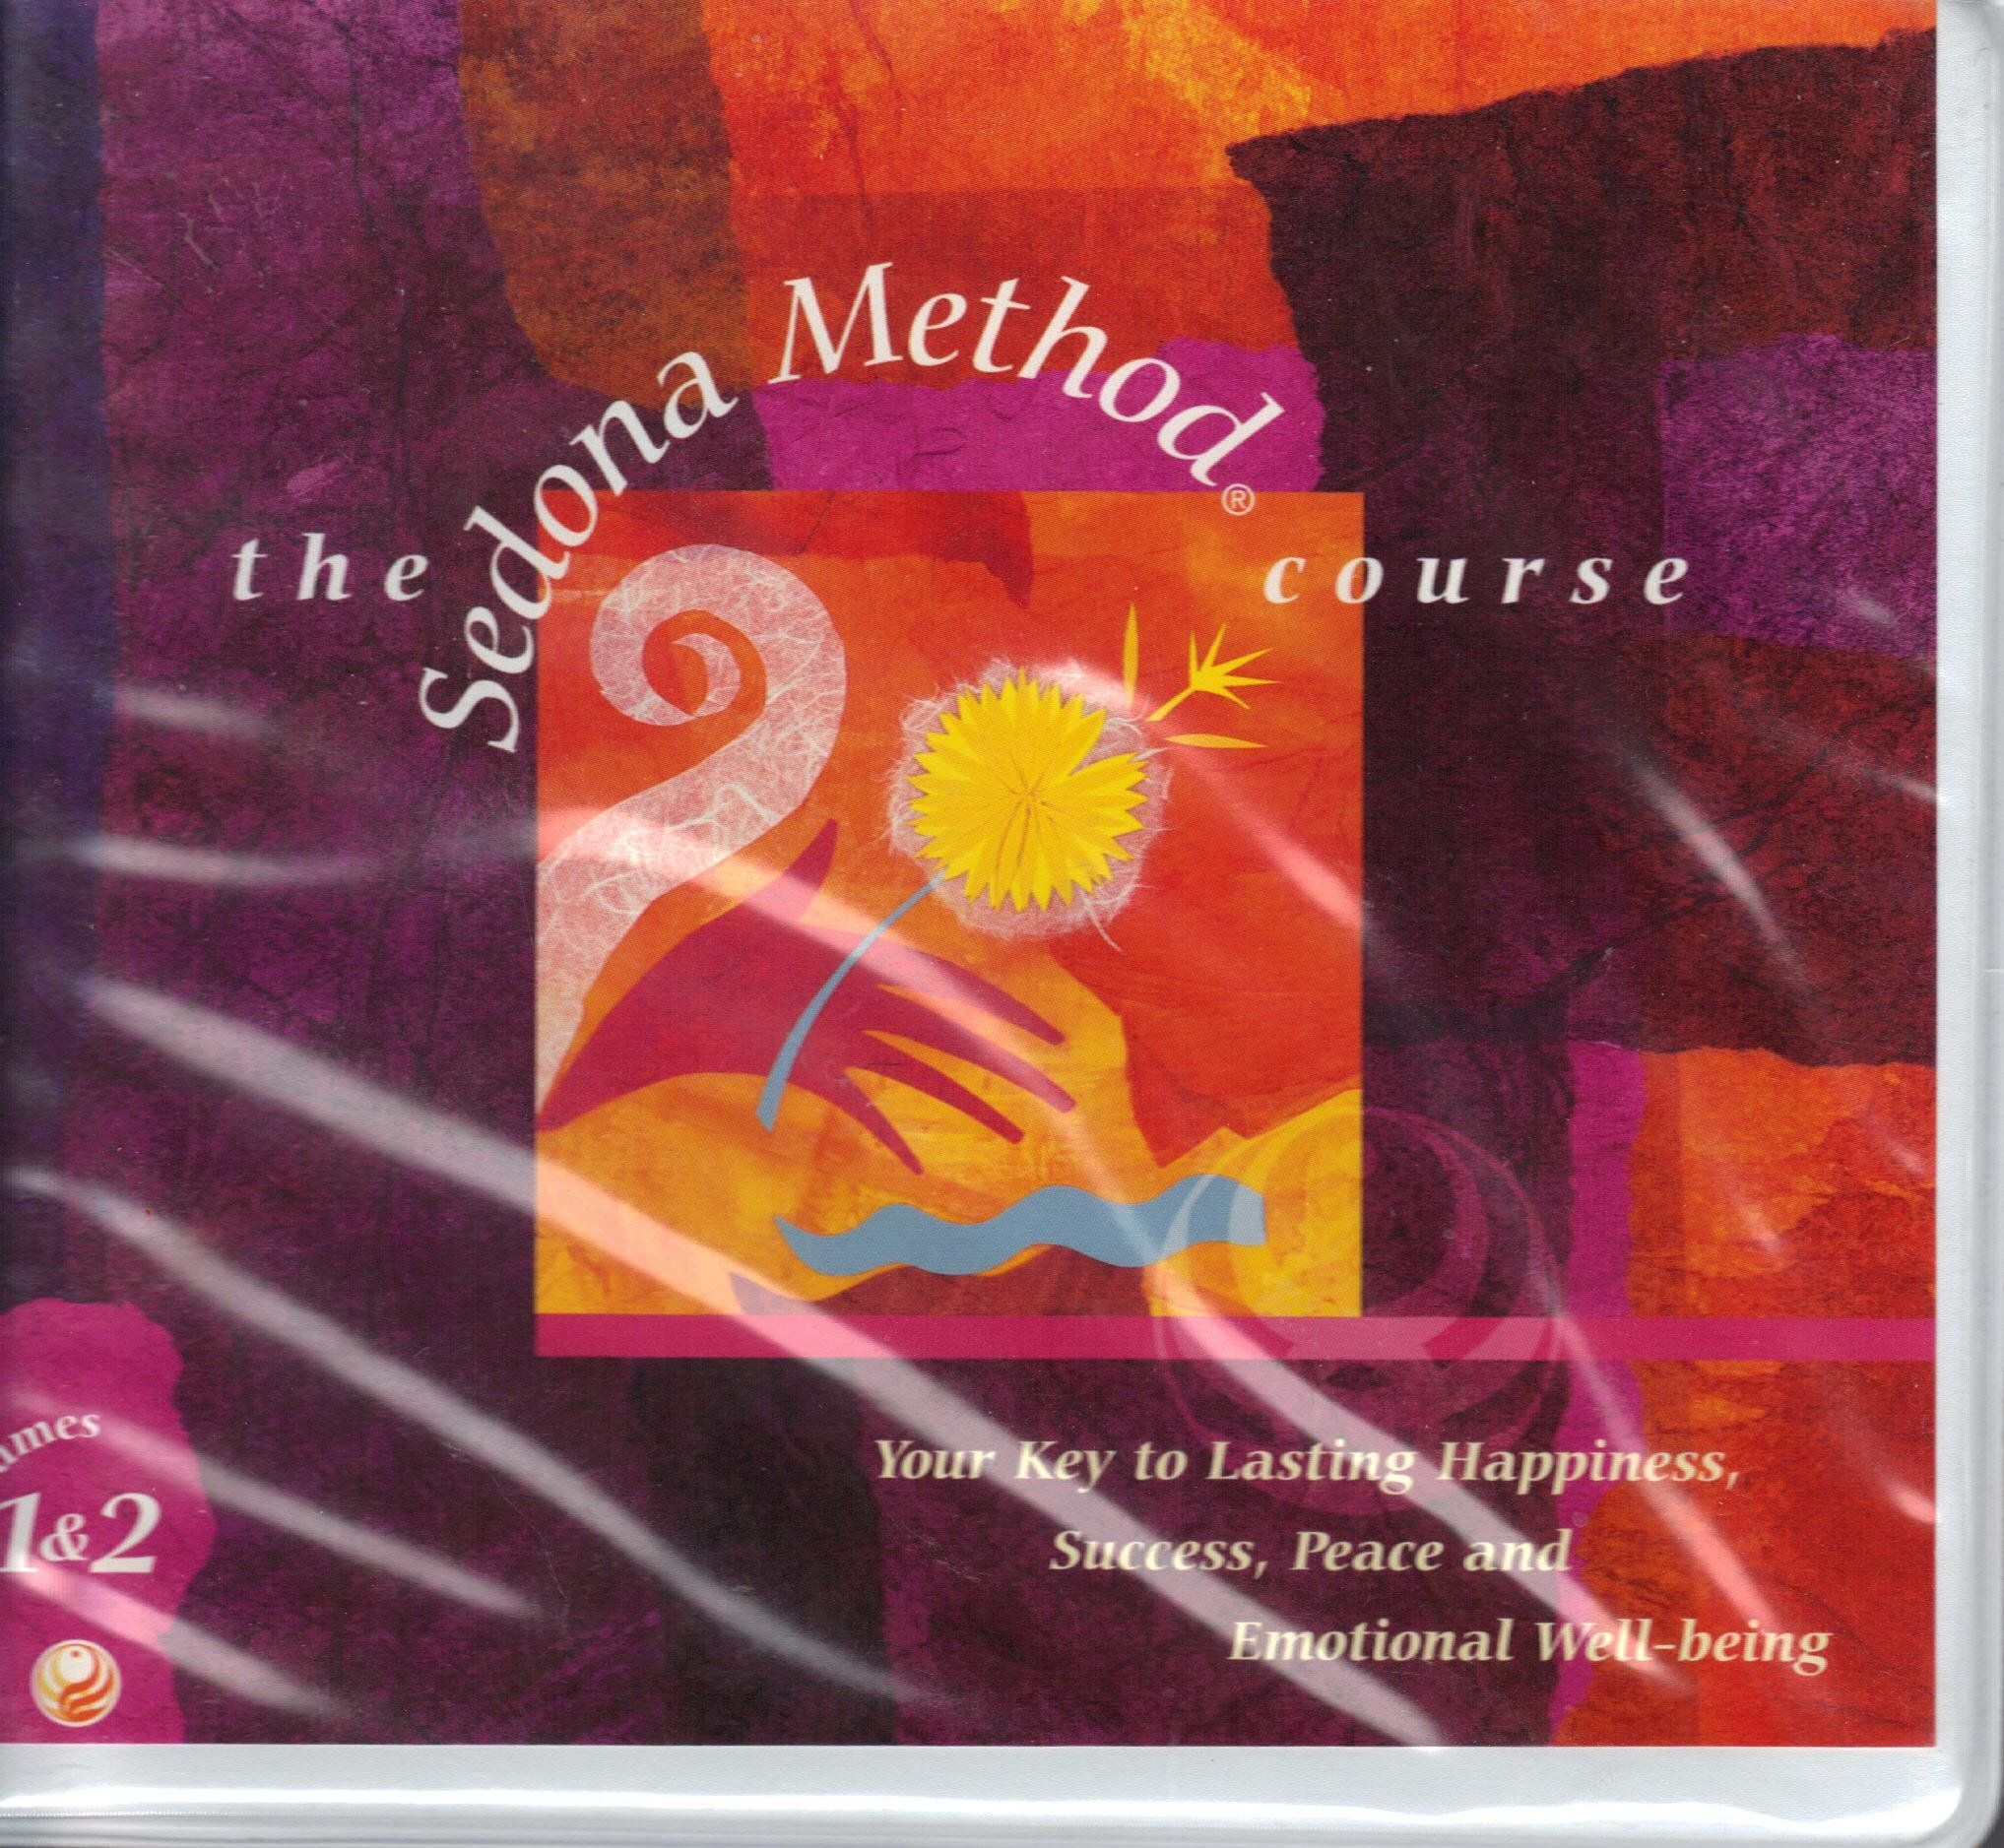 Sedona Method Book